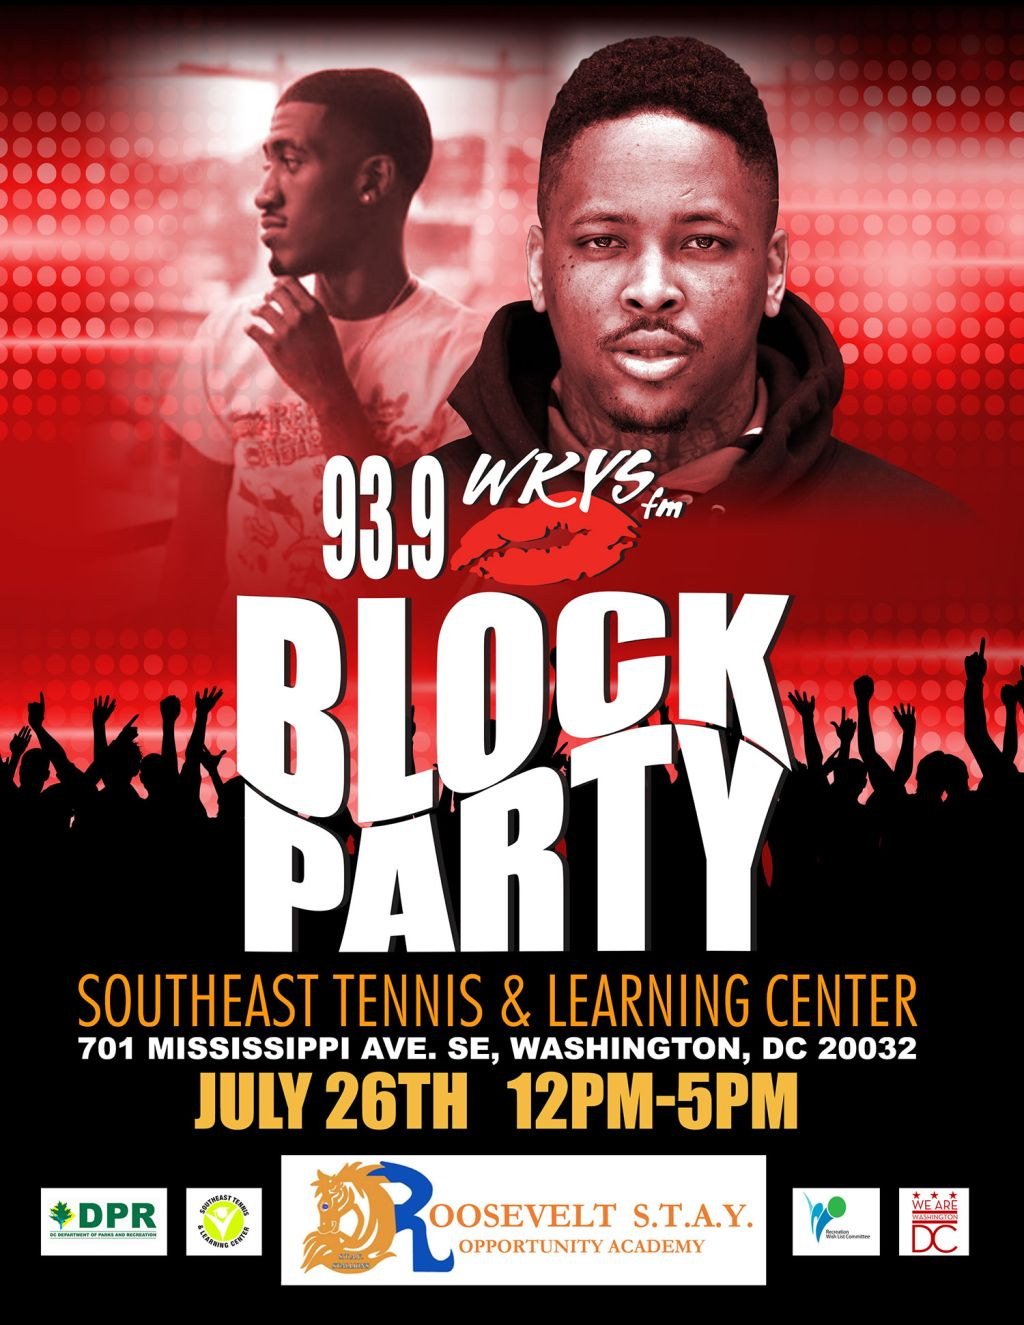 93.9 WKYS 2018 Block Party